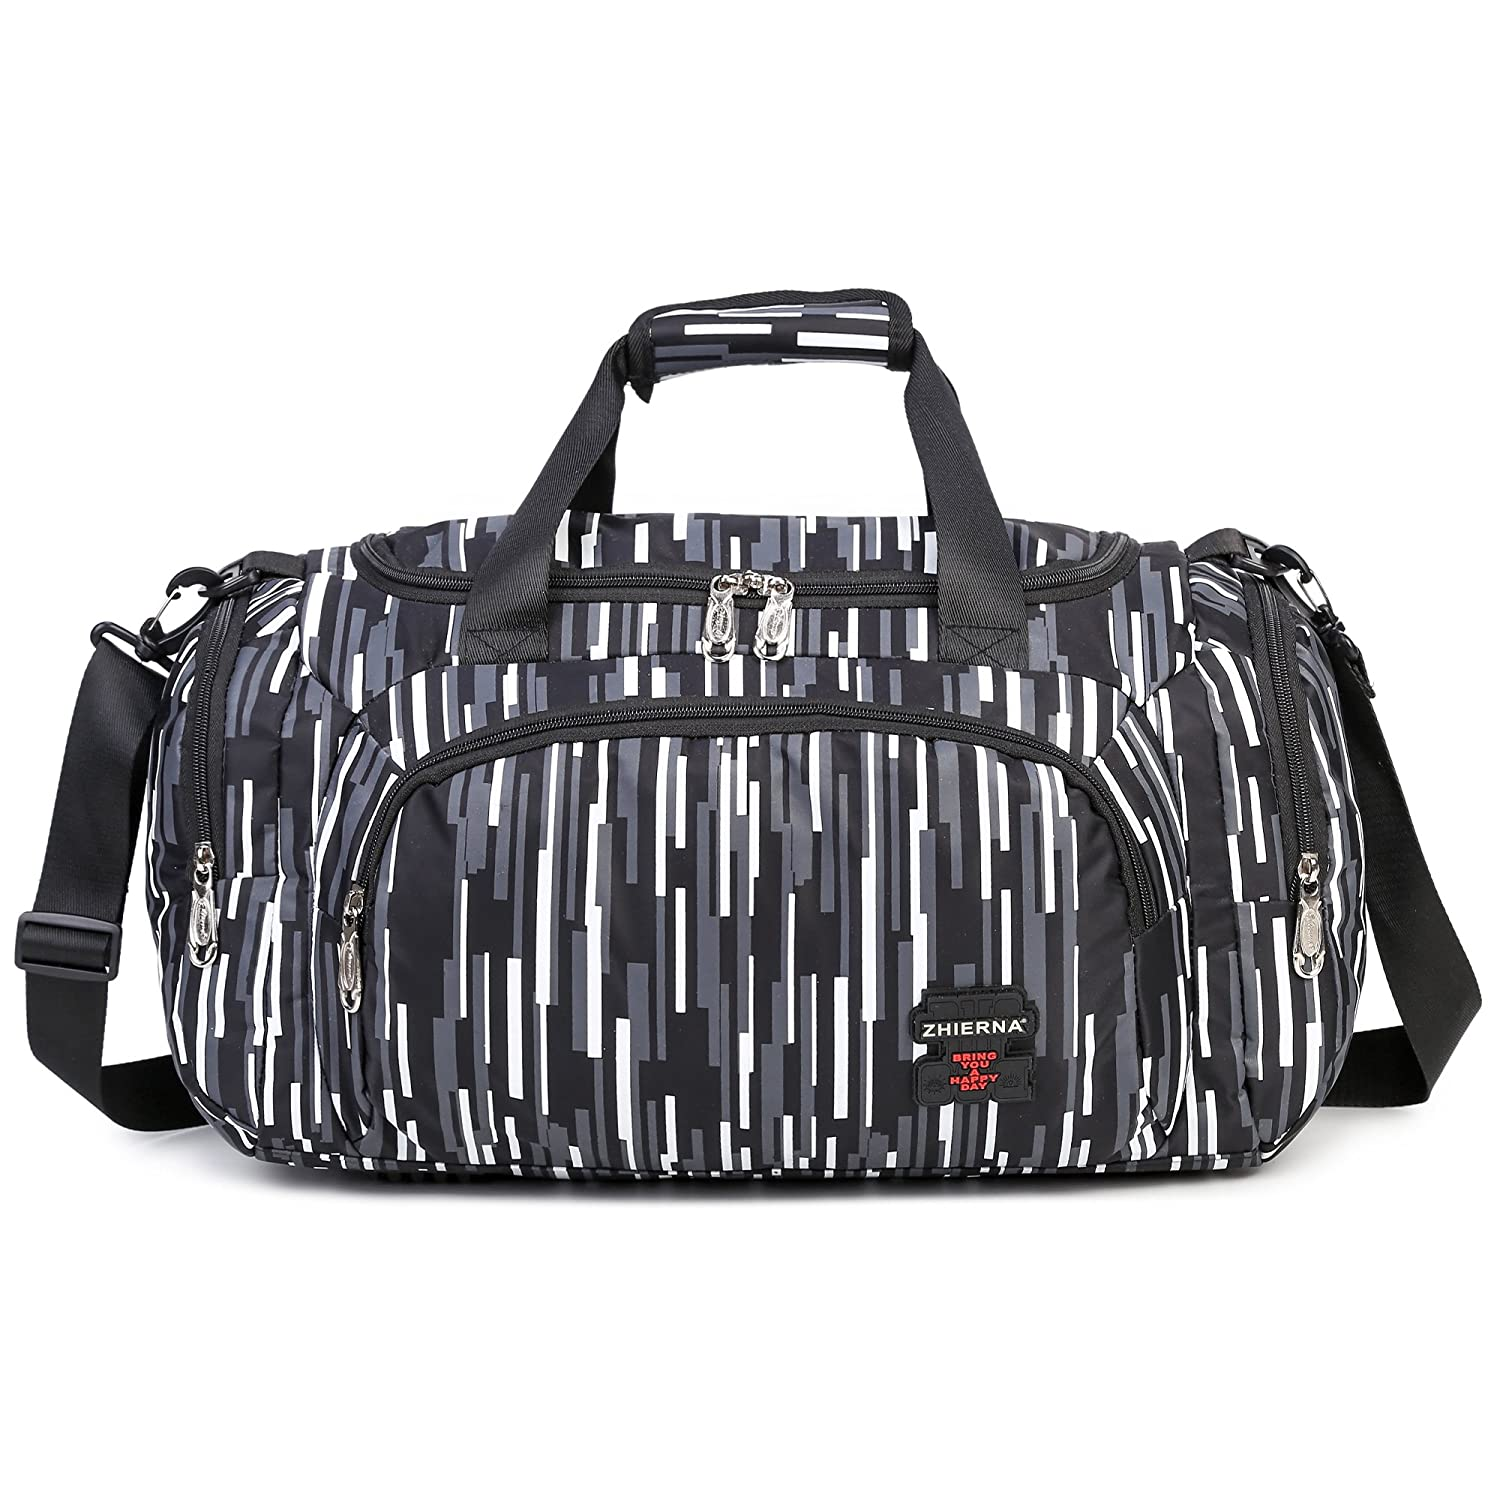 AOKE AOKE Small Travel Tote Weekender Bag Stand Holdall Duffle Luggage with Adjustable Shoulder Strap for Short Trip Black Candy Color